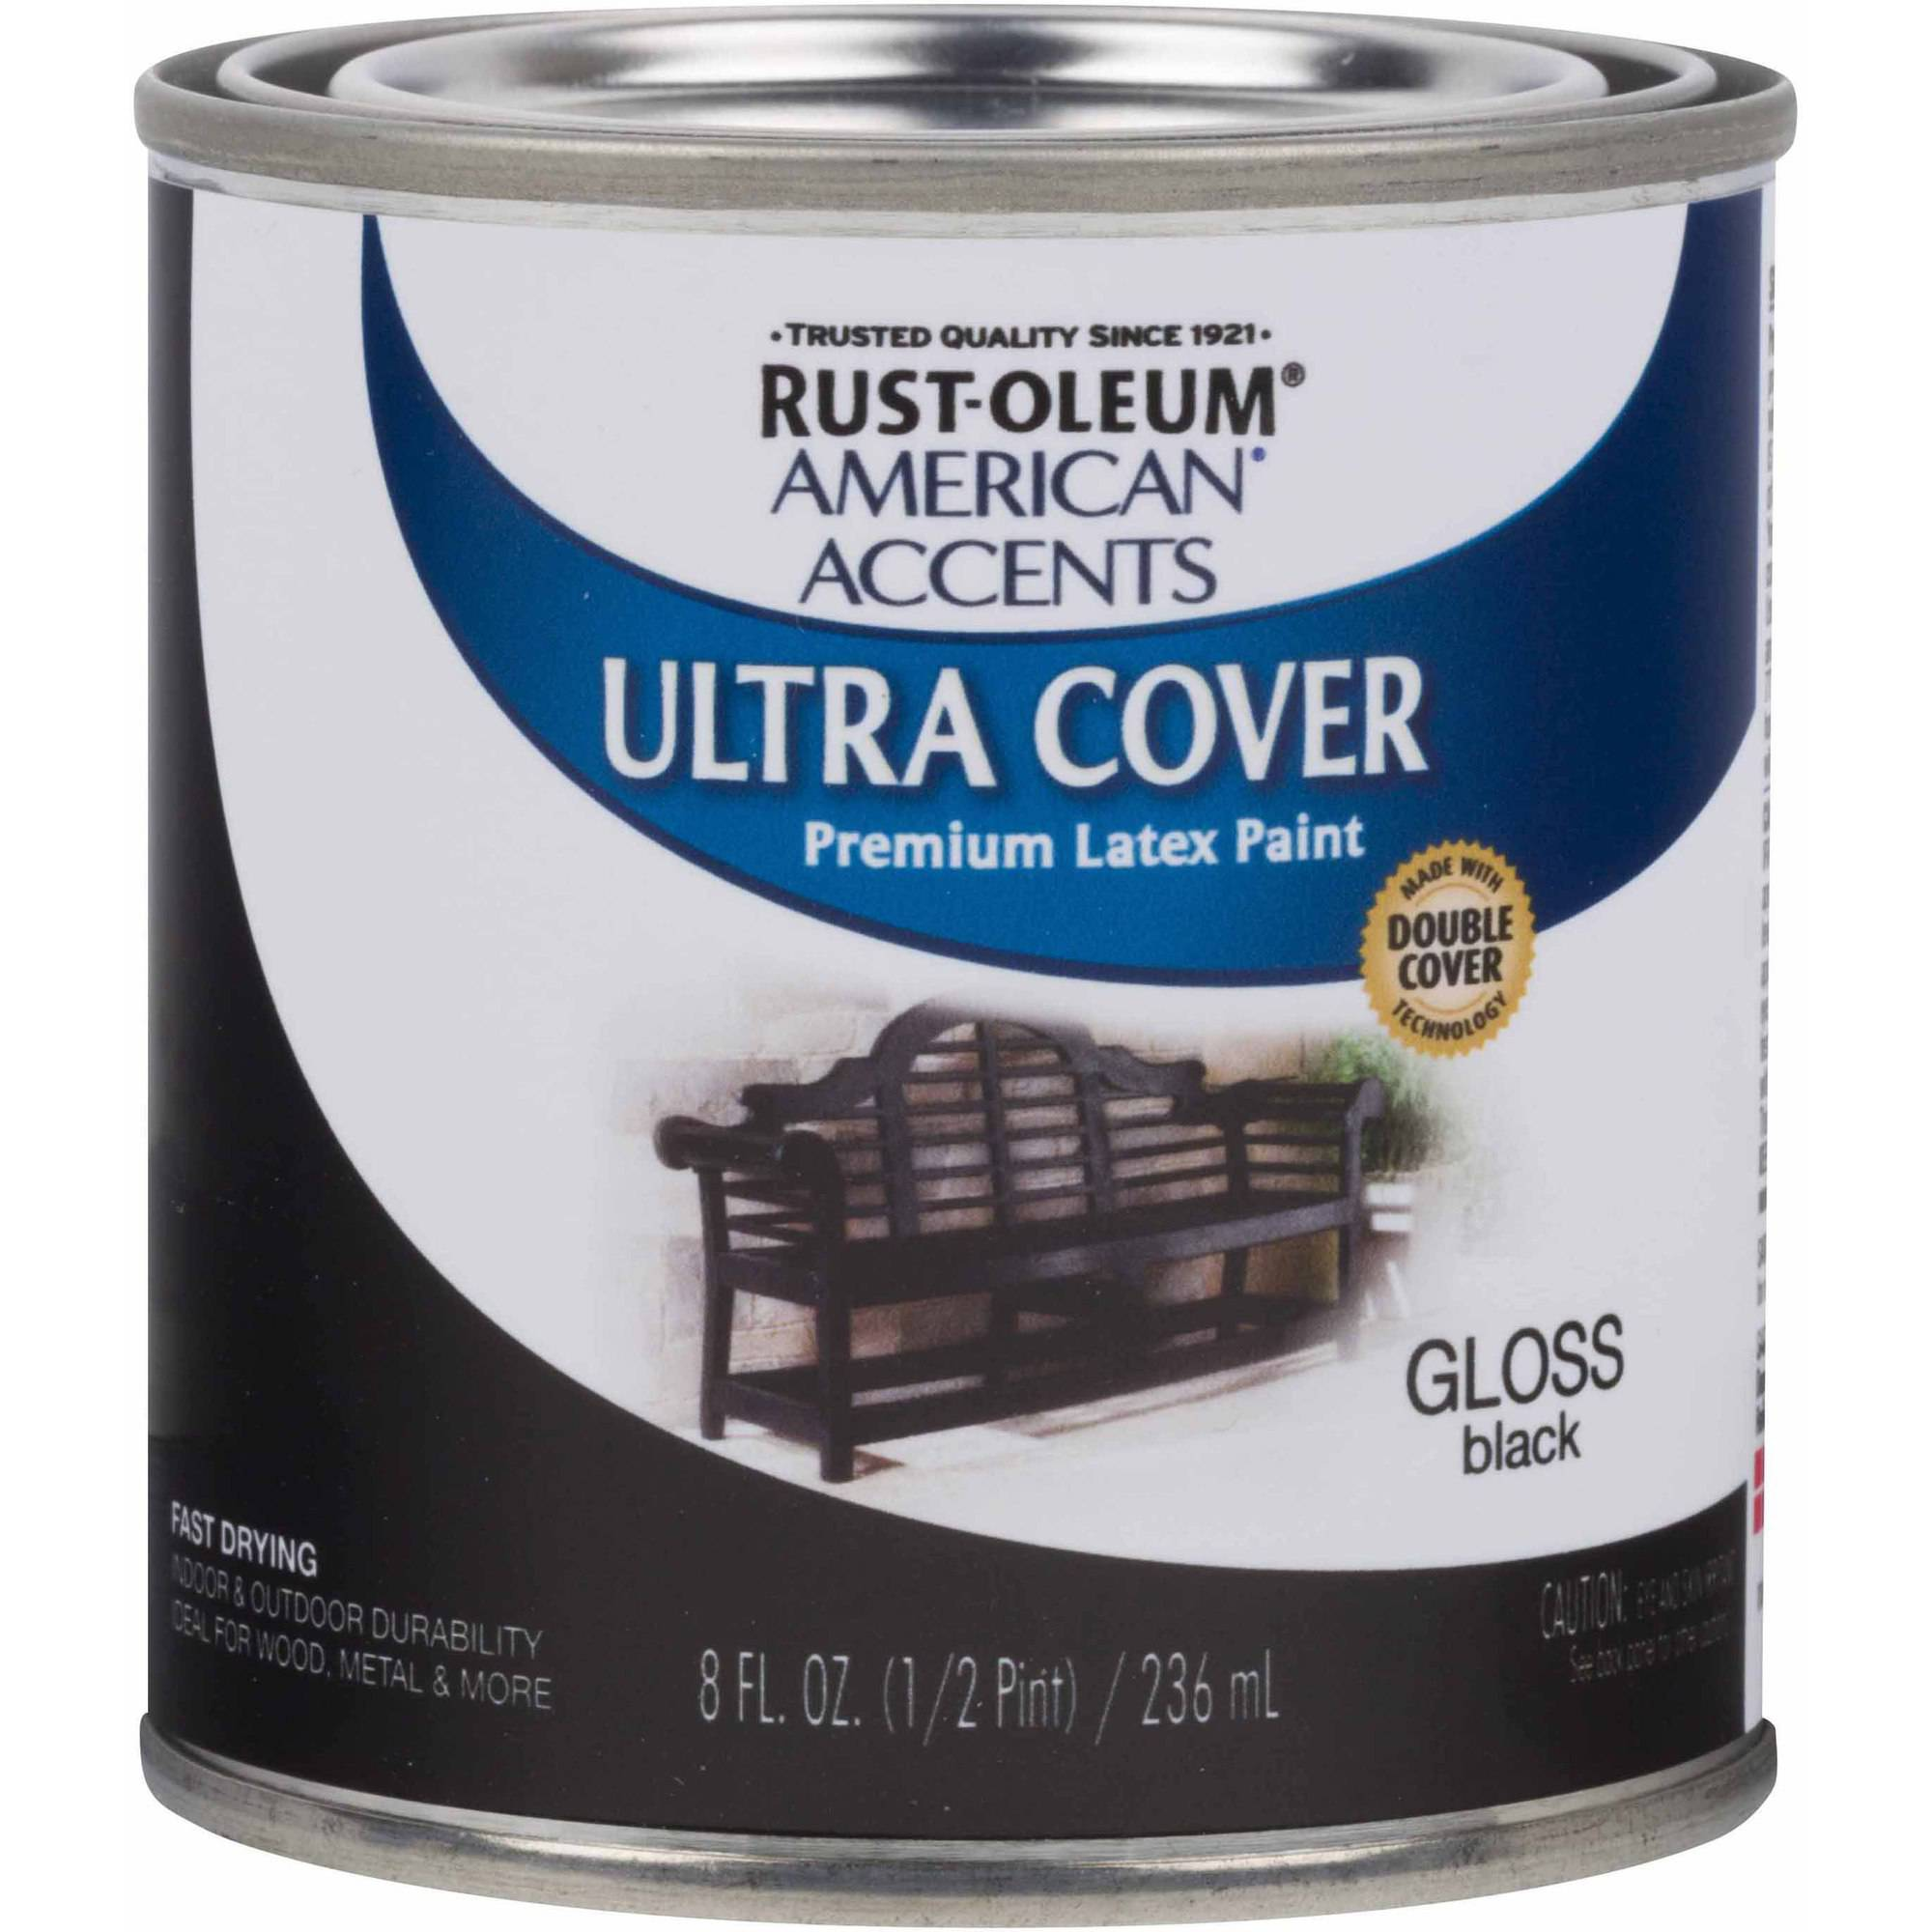 Rust-Oleum American Accents Ultra Cover Half-Pint, Gloss Black